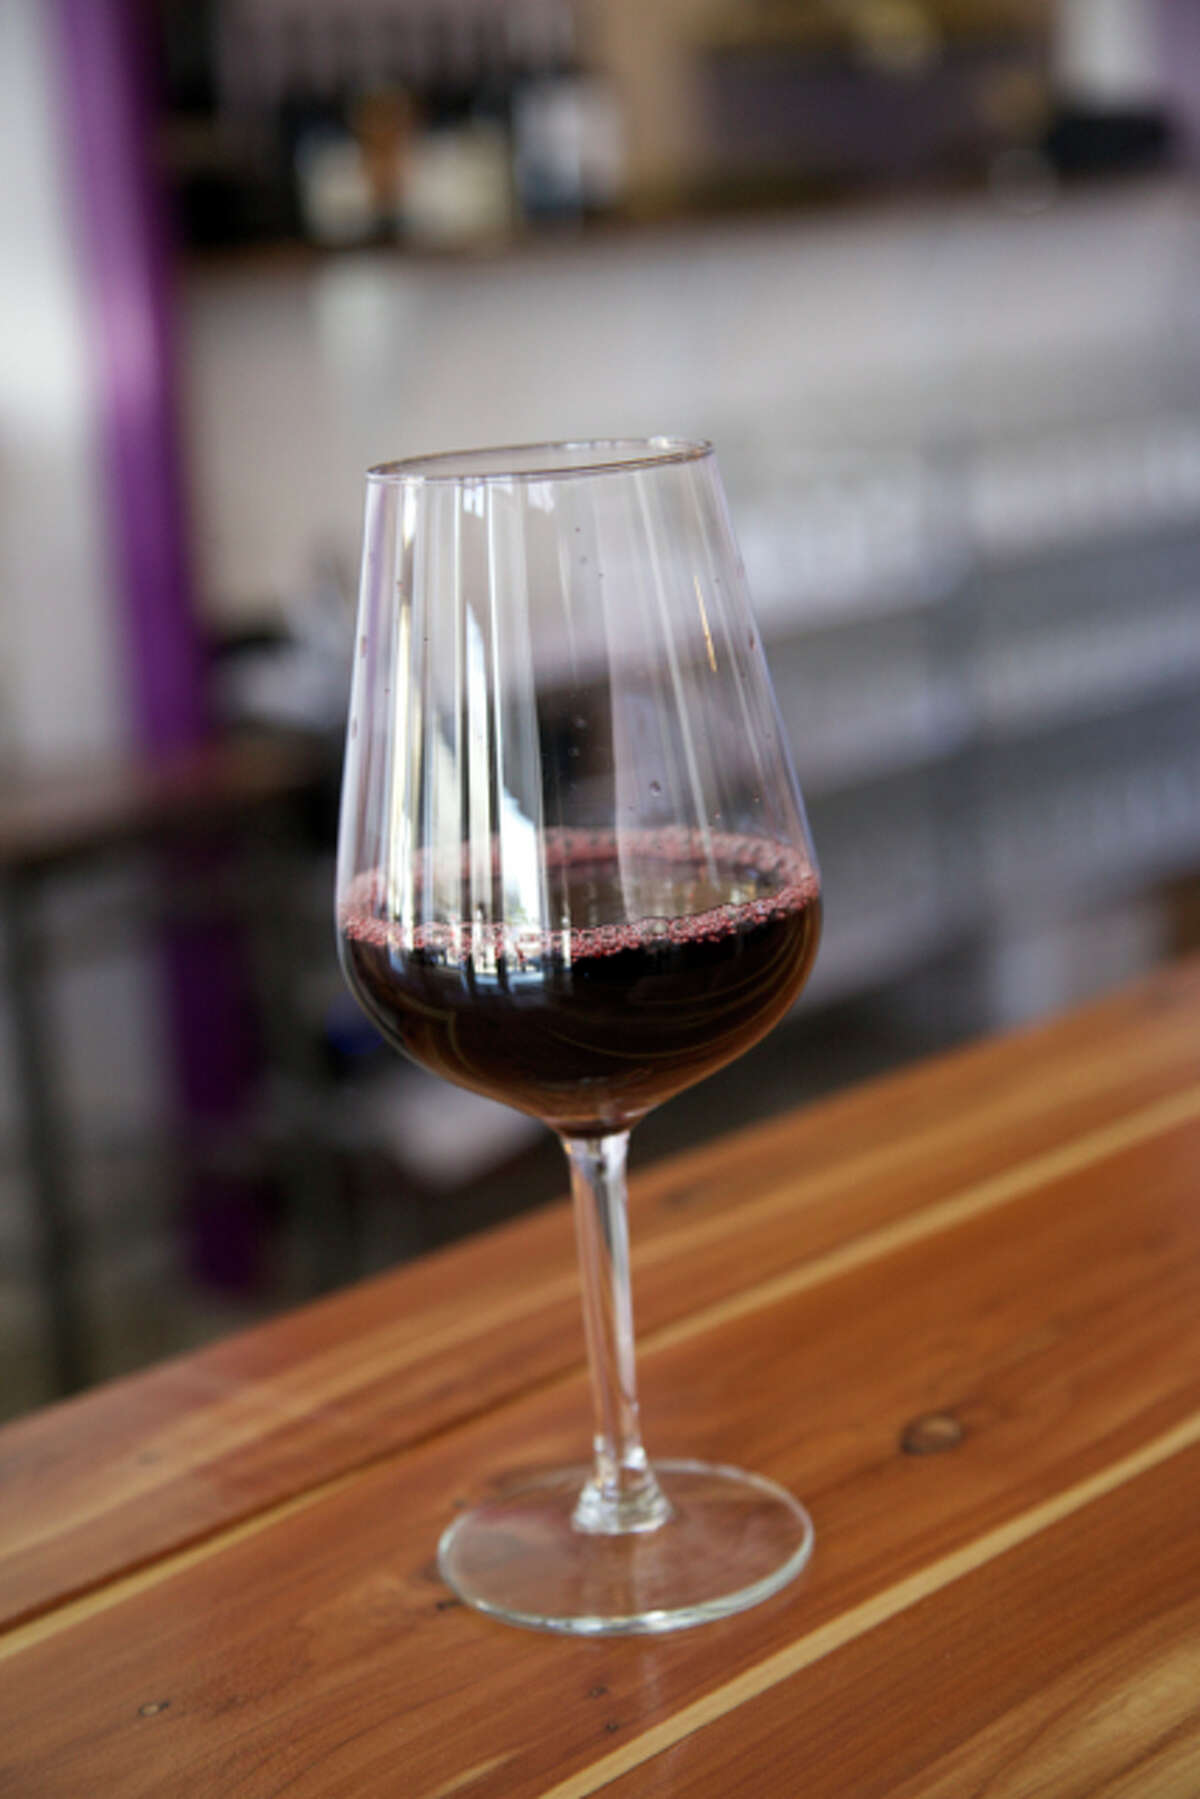 A glass of wine at Nectar Wine Bar & ale House, which got the critic's pick for Wine Selection.